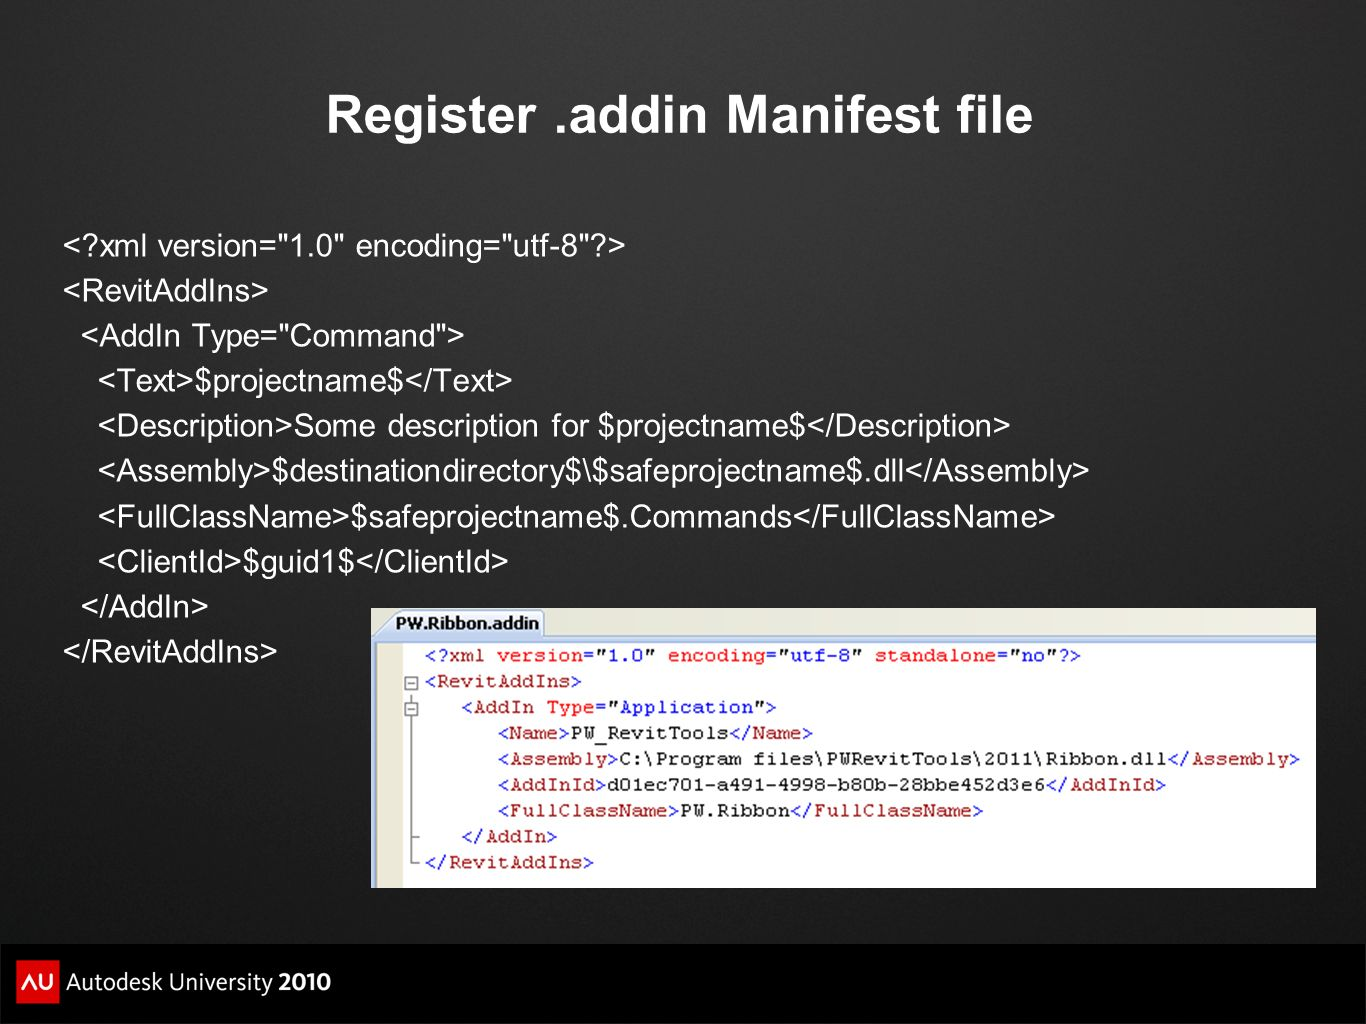 Register .addin Manifest file